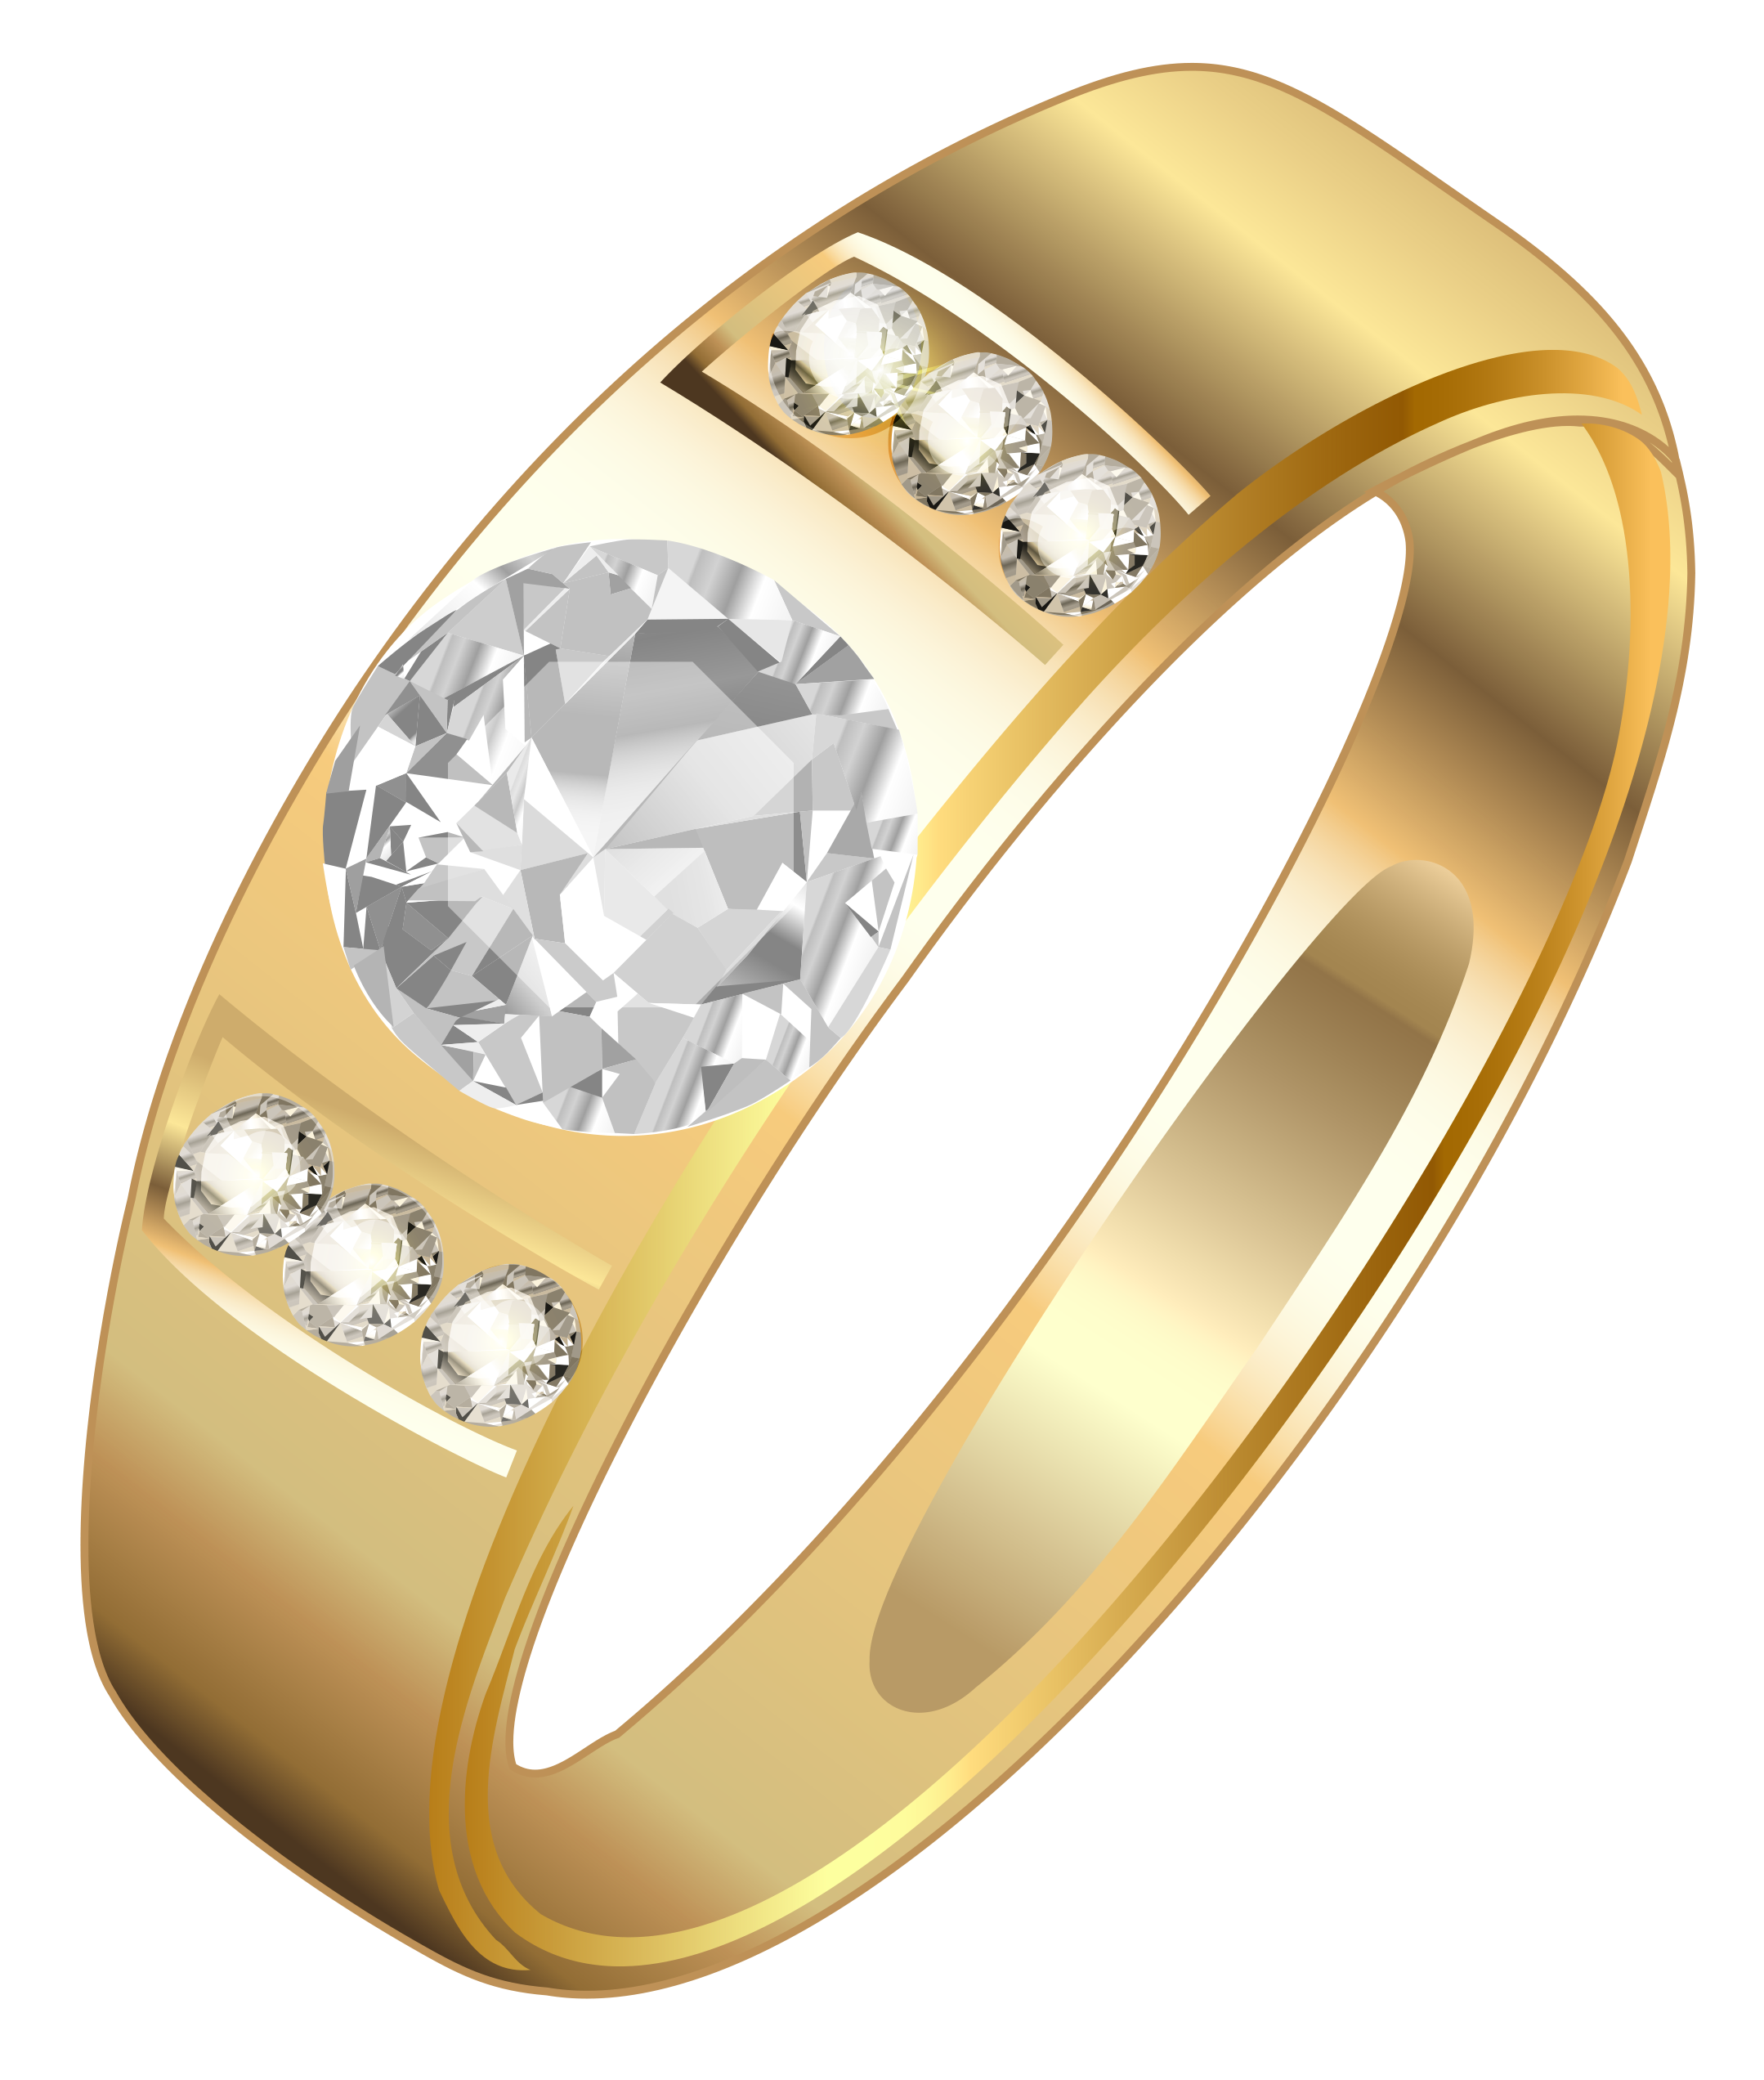 Diamond ring png. Jewelry images free download